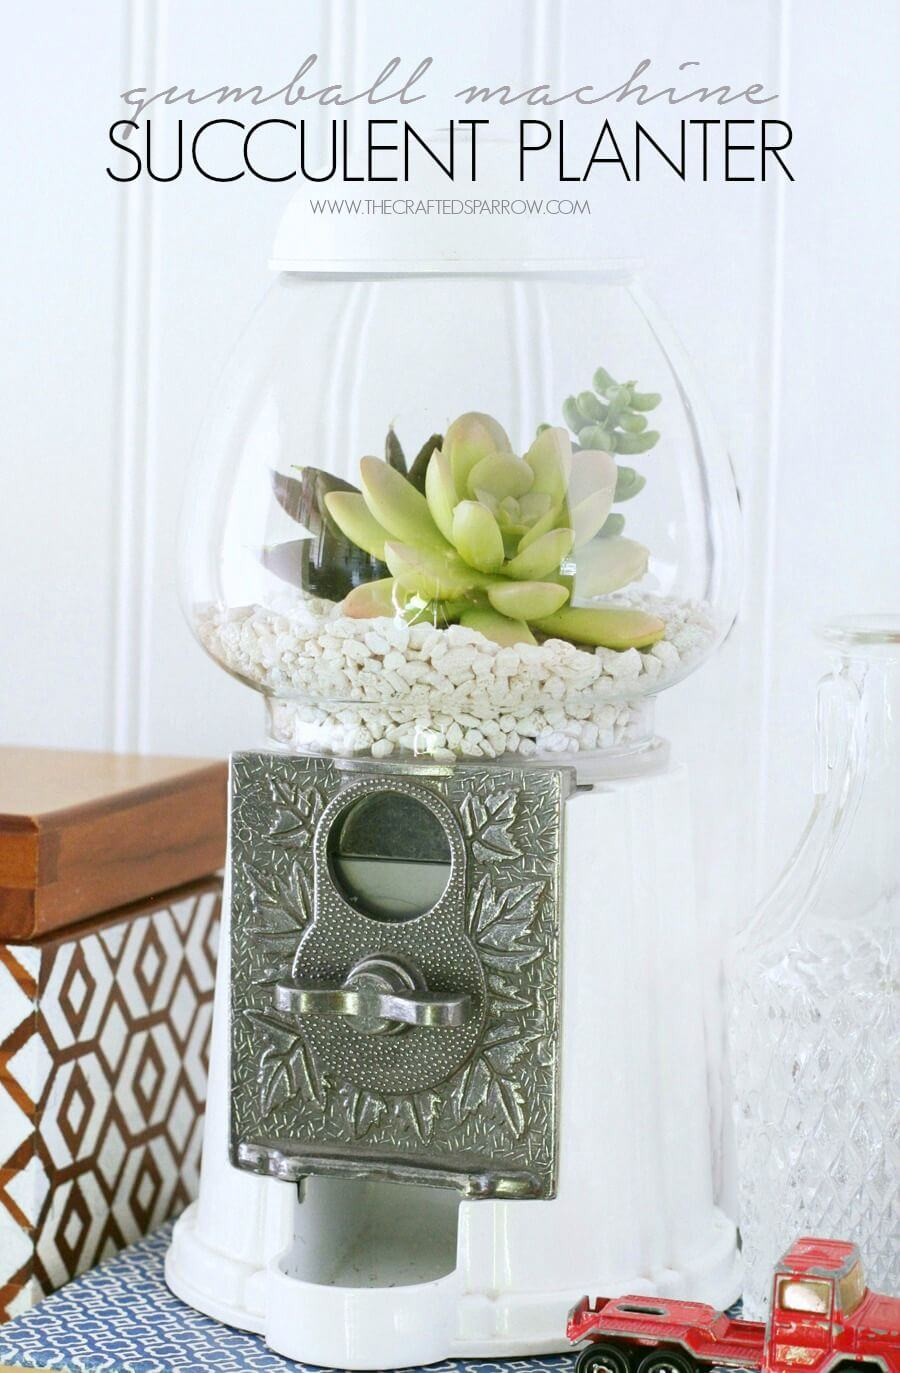 Whimsical Gumball Machine Succulent Planter